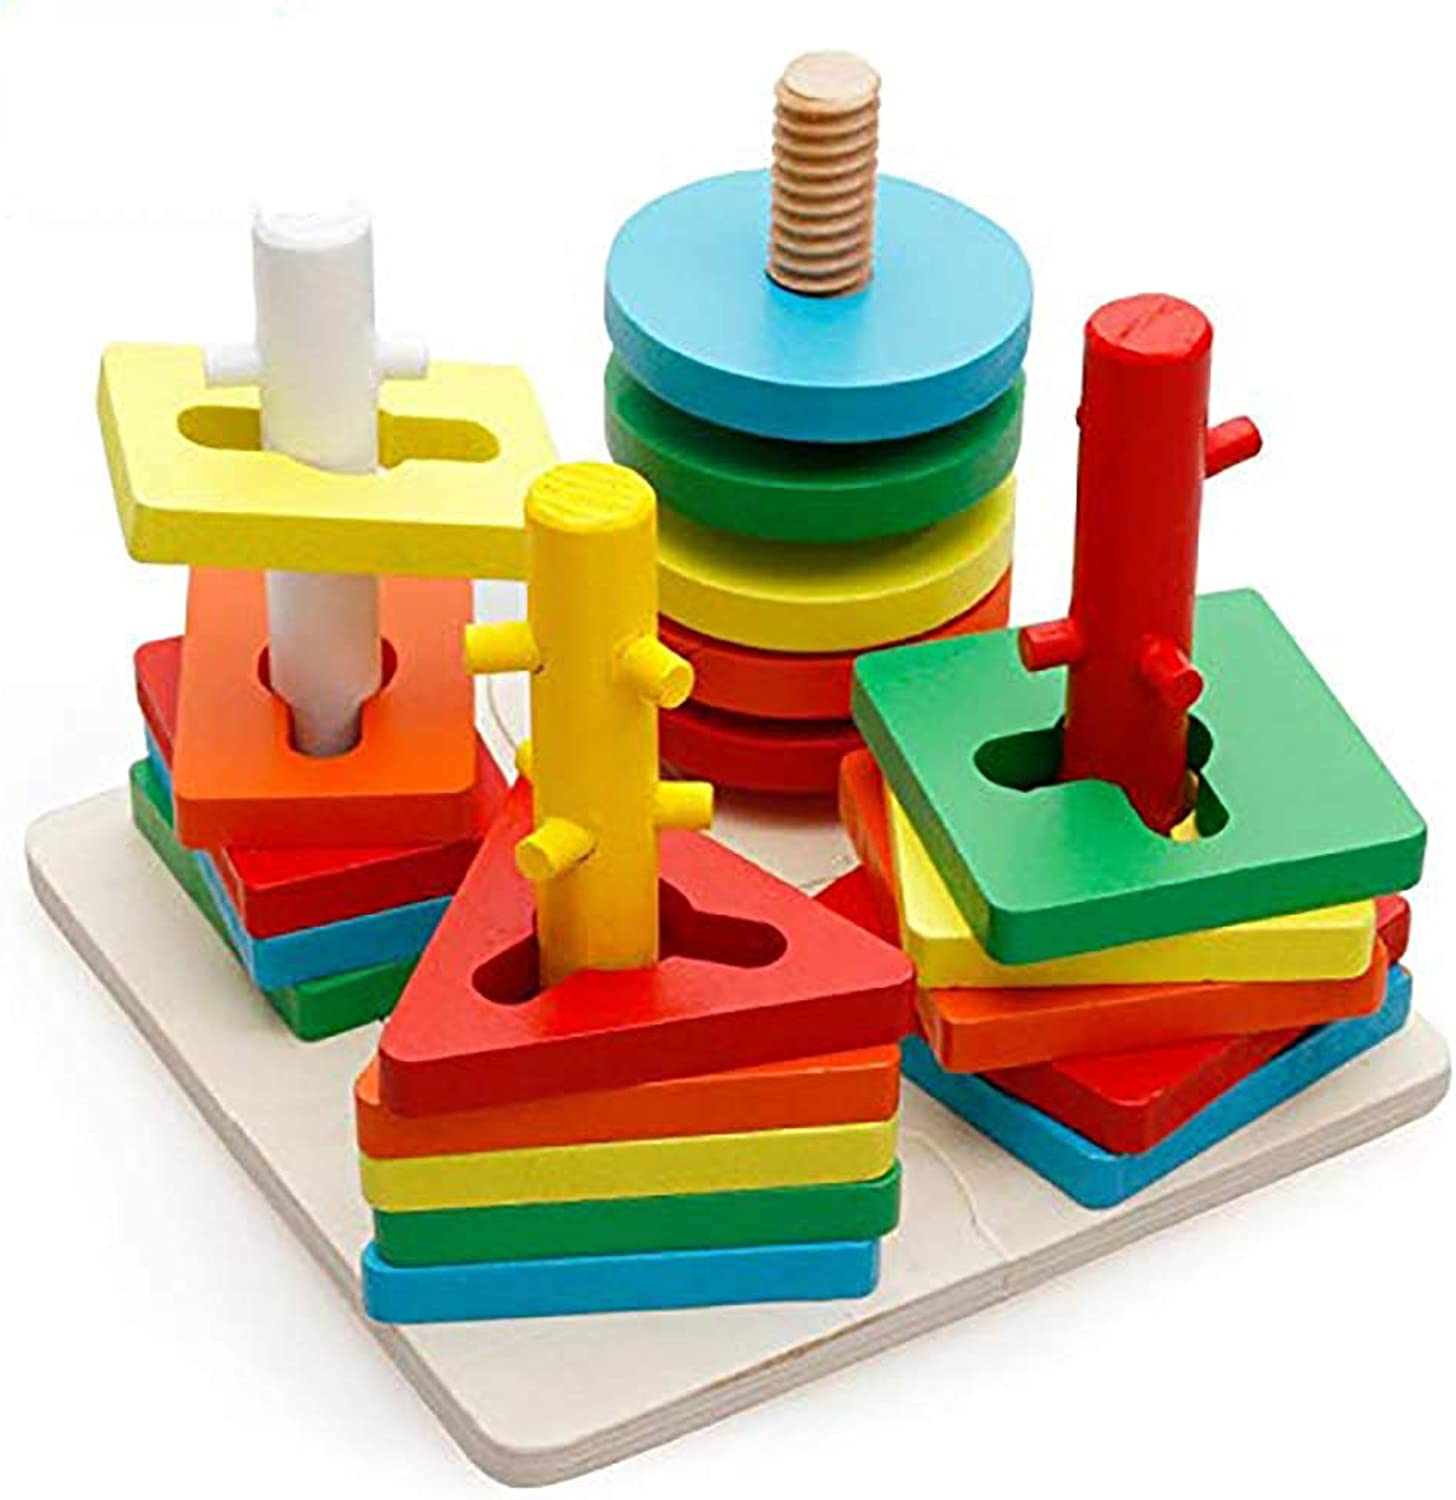 Globe Shapes Wooden Geometric Original Resources Learning